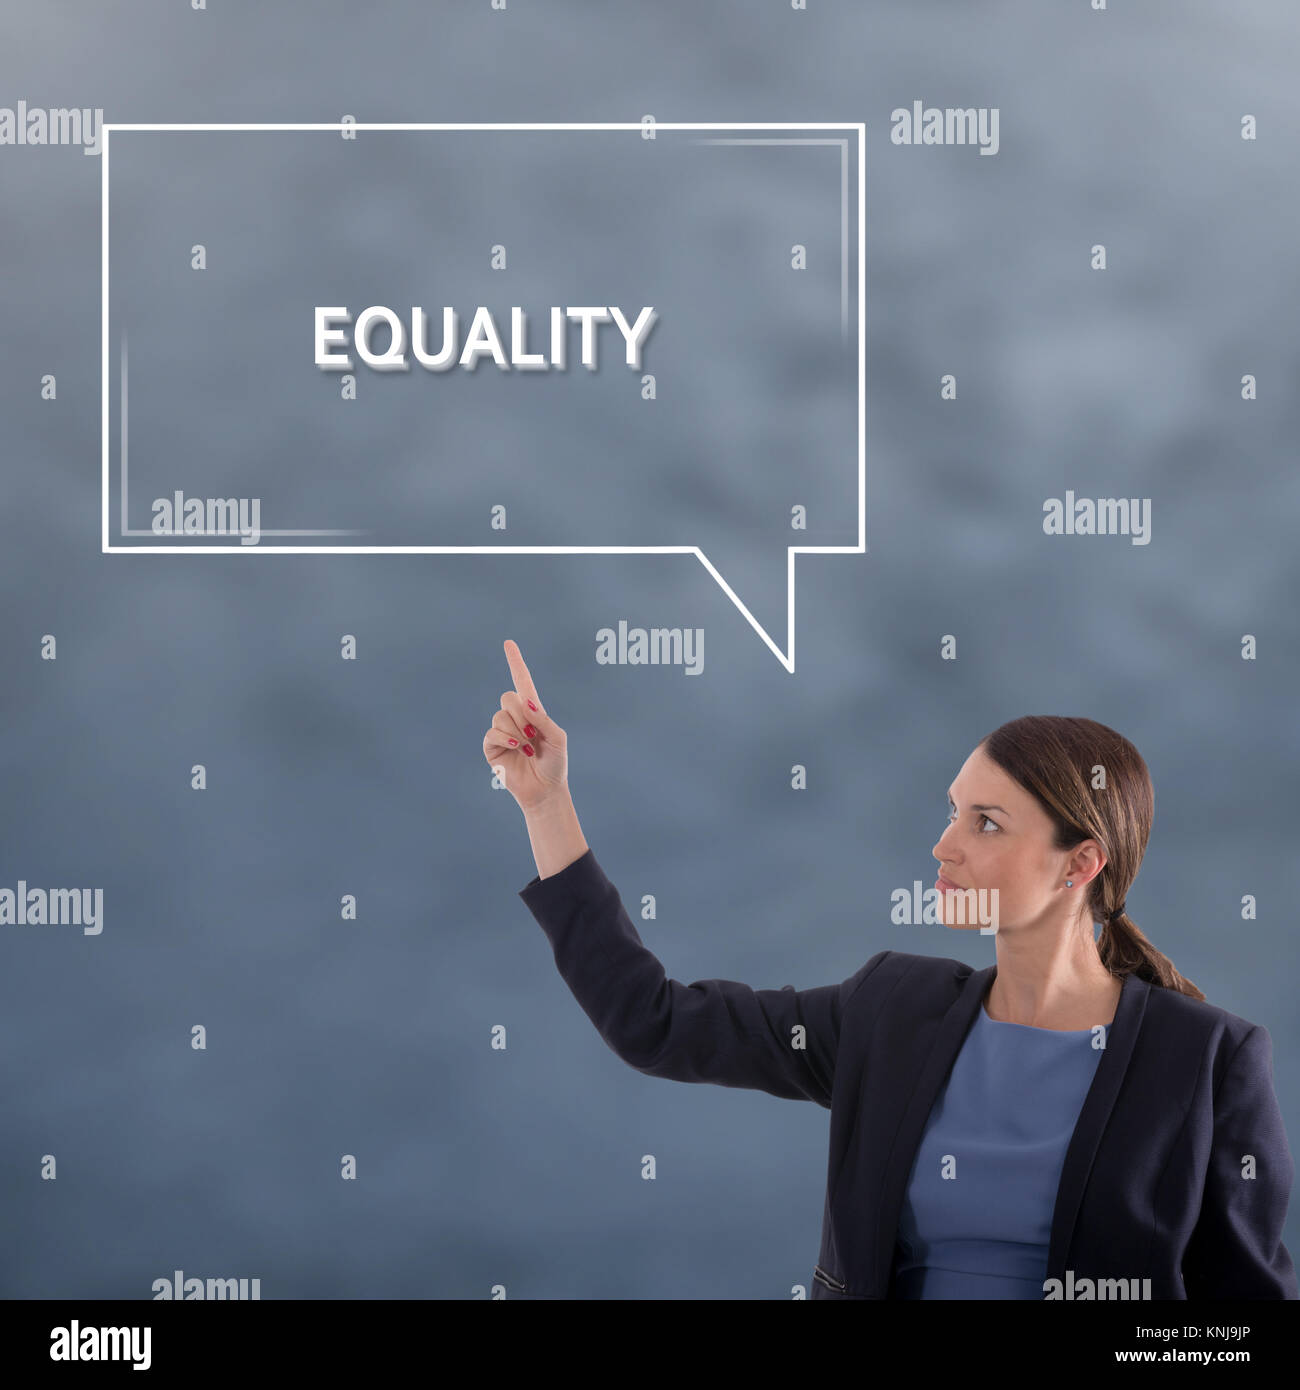 EQUALITY Business Concept. Business Woman Graphic Concept - Stock Image